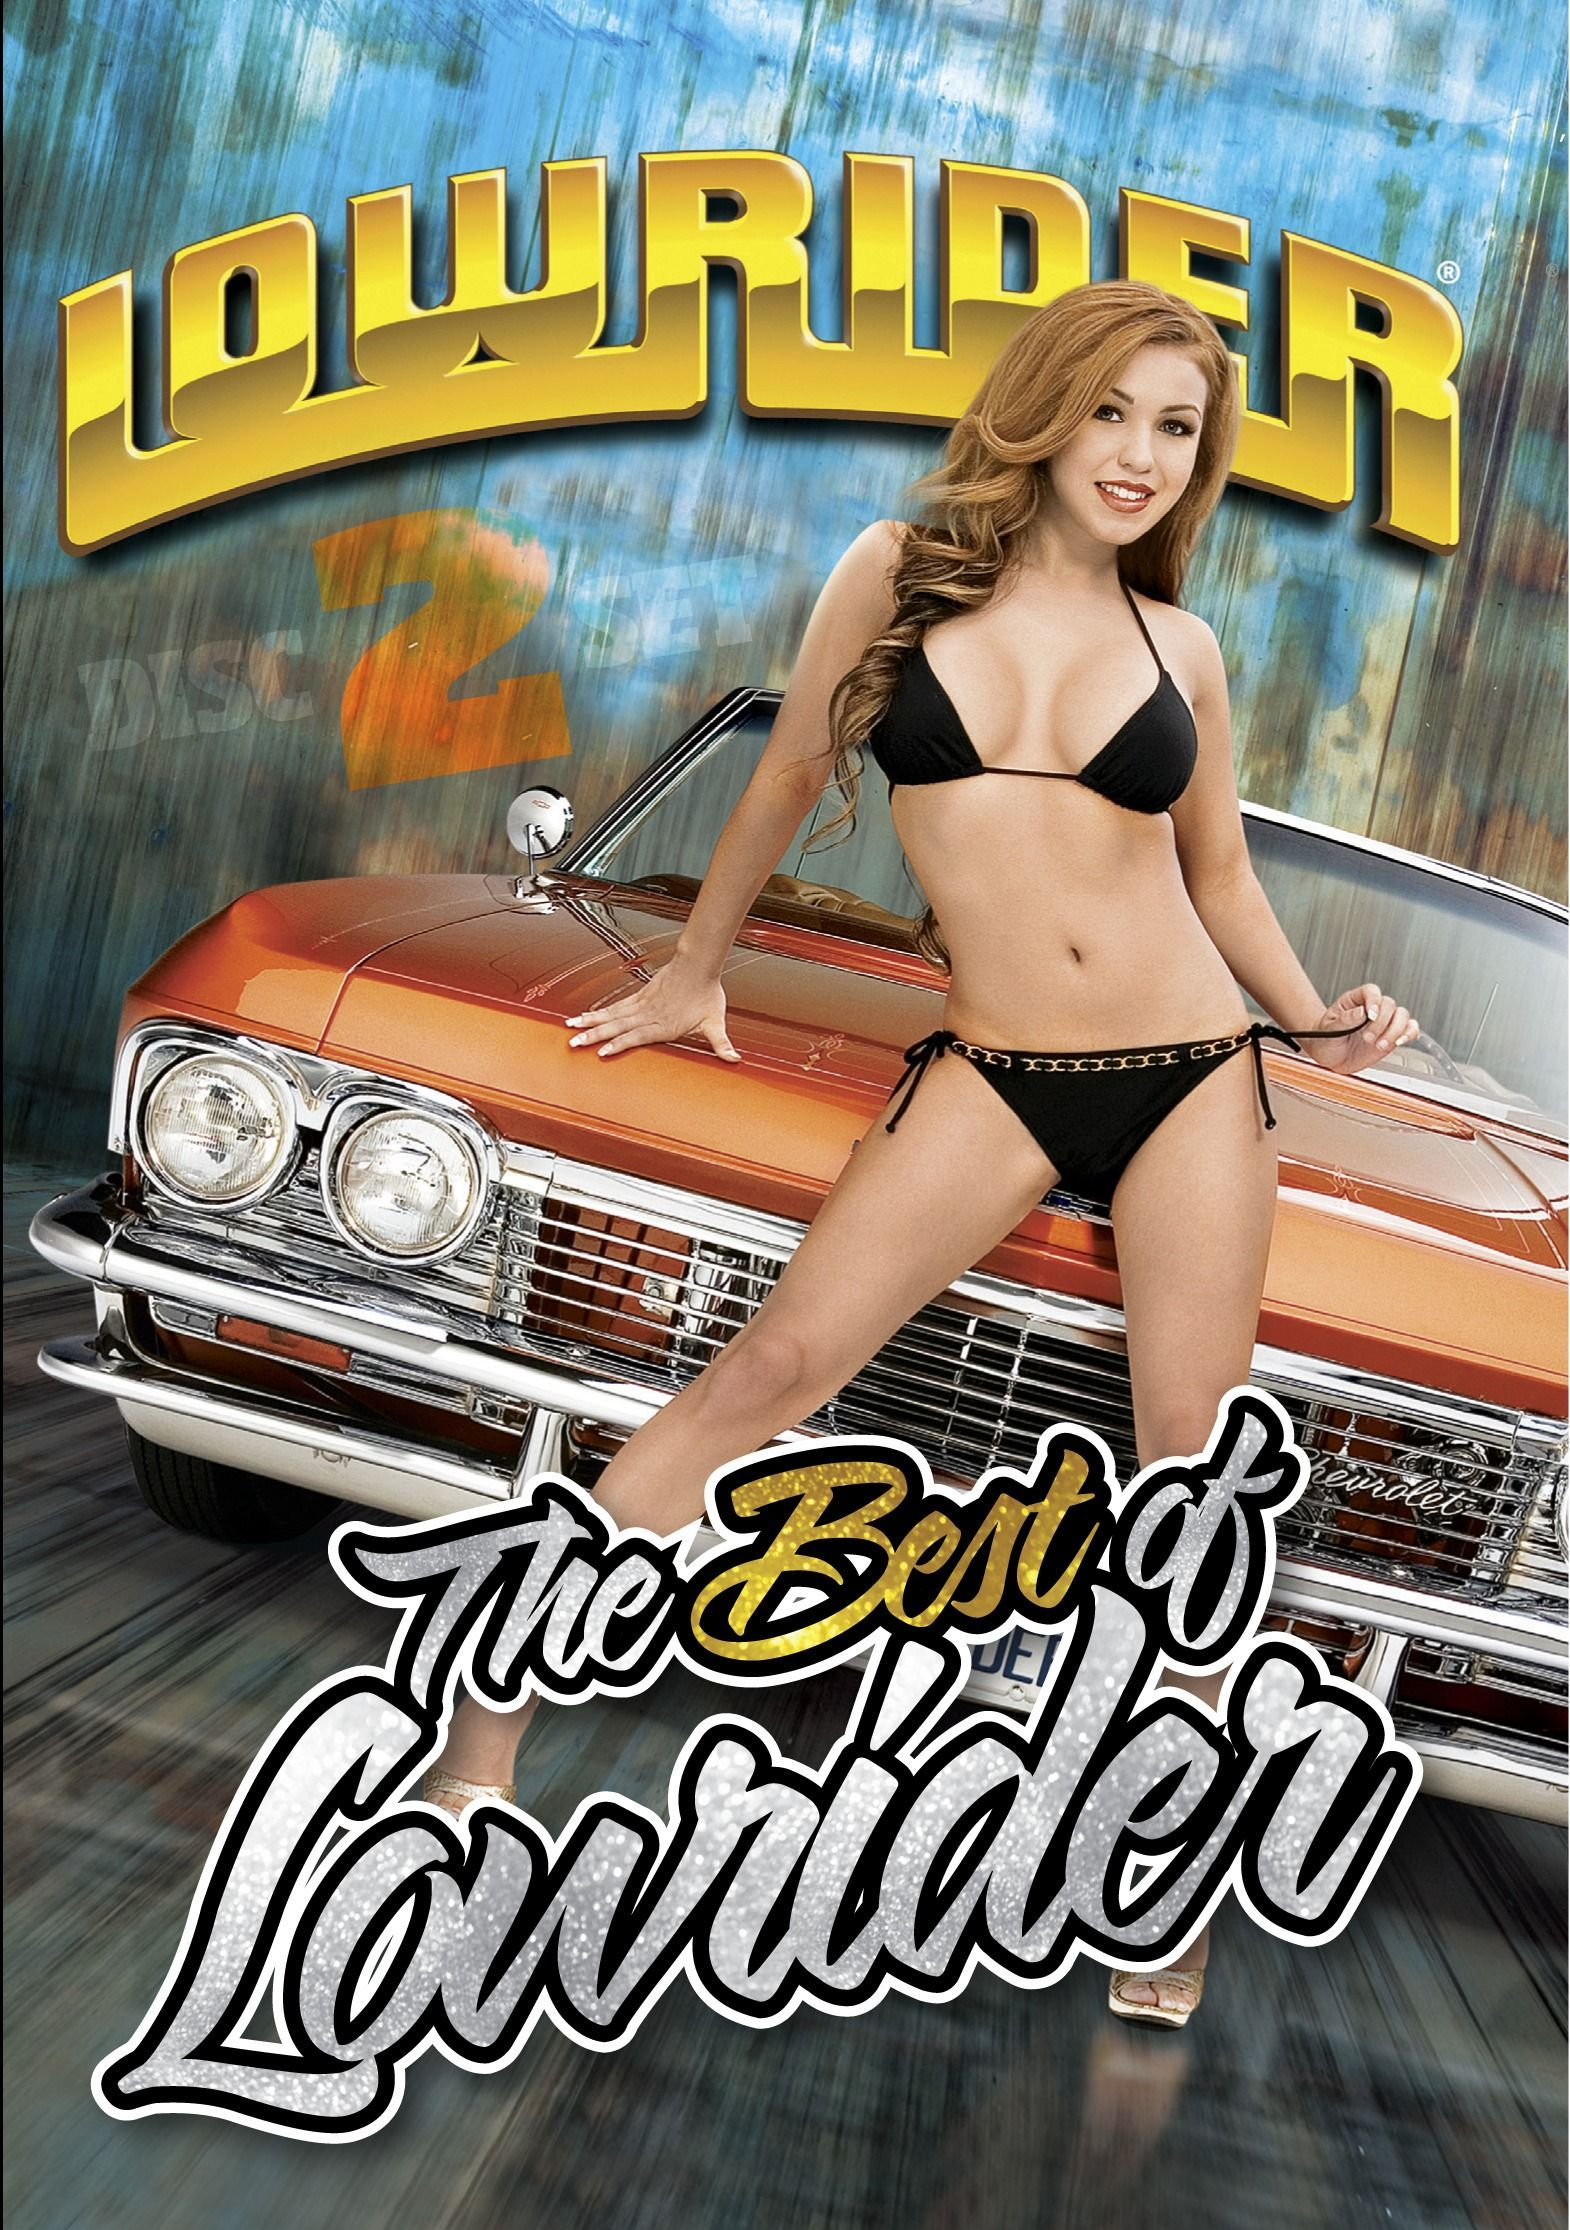 LOWRIDER MAGAZINE brings its fans this comprehensive tour of six major cities, offering a selection of cars and girls sure to please connoisseurs of both. Traveling to San Bernardino, Tampa, Chicago,